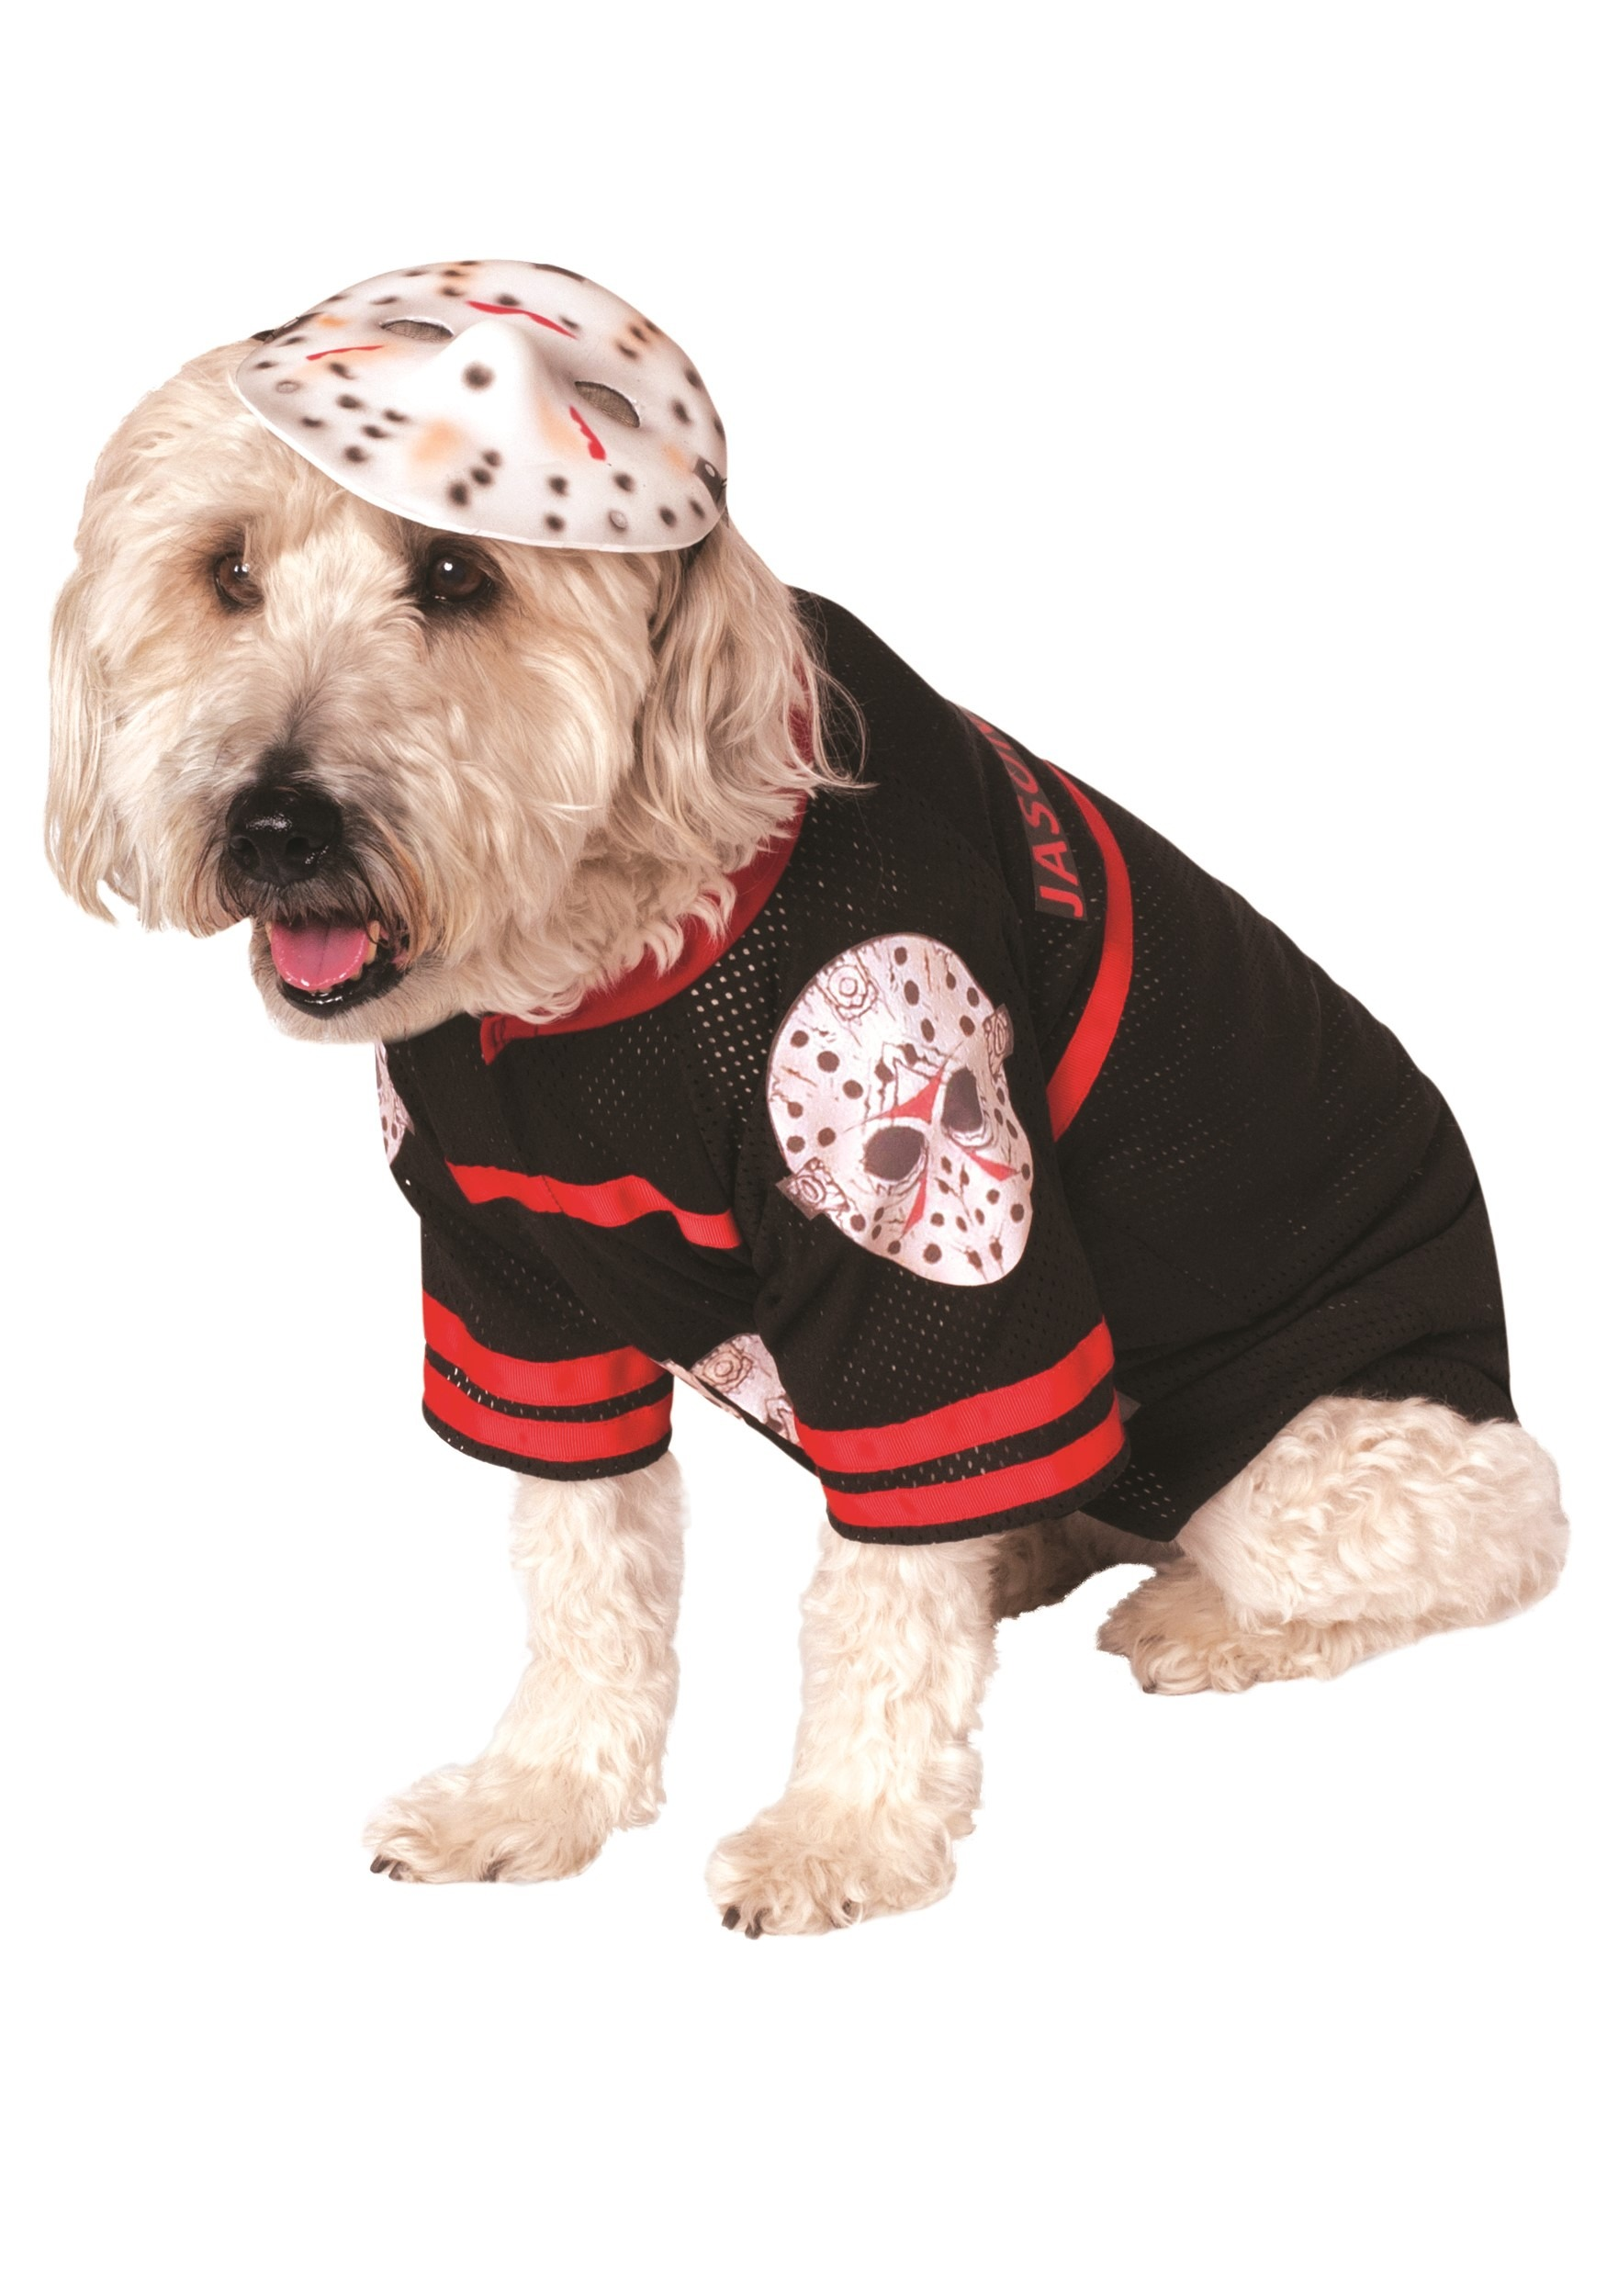 Jason Voorhees Costume for Pets